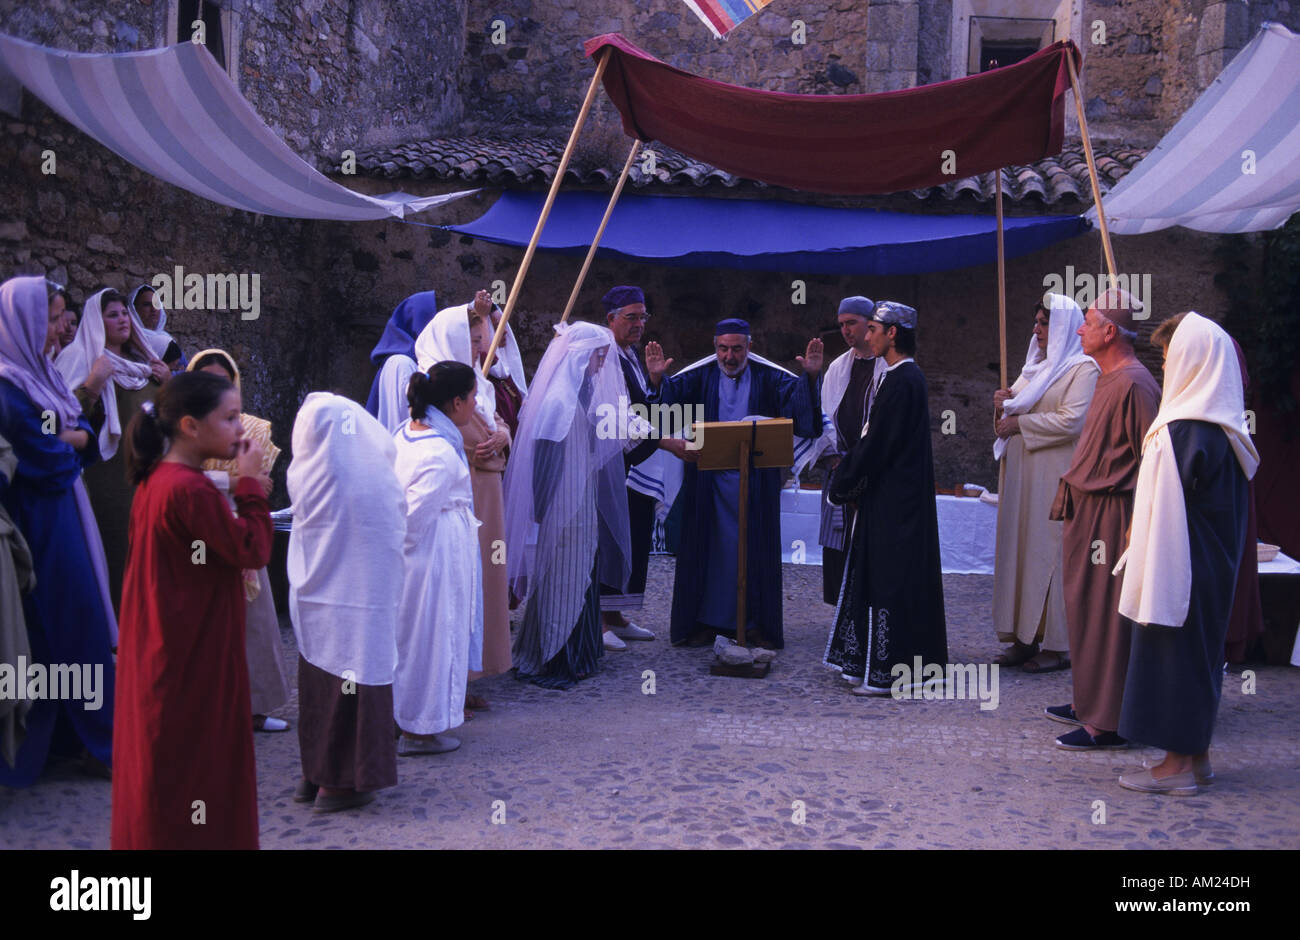 Sephardic wedding MIDDLE AGES FESTIVAL in ALBURQUERQUE Badajoz province Spain Stock Photo